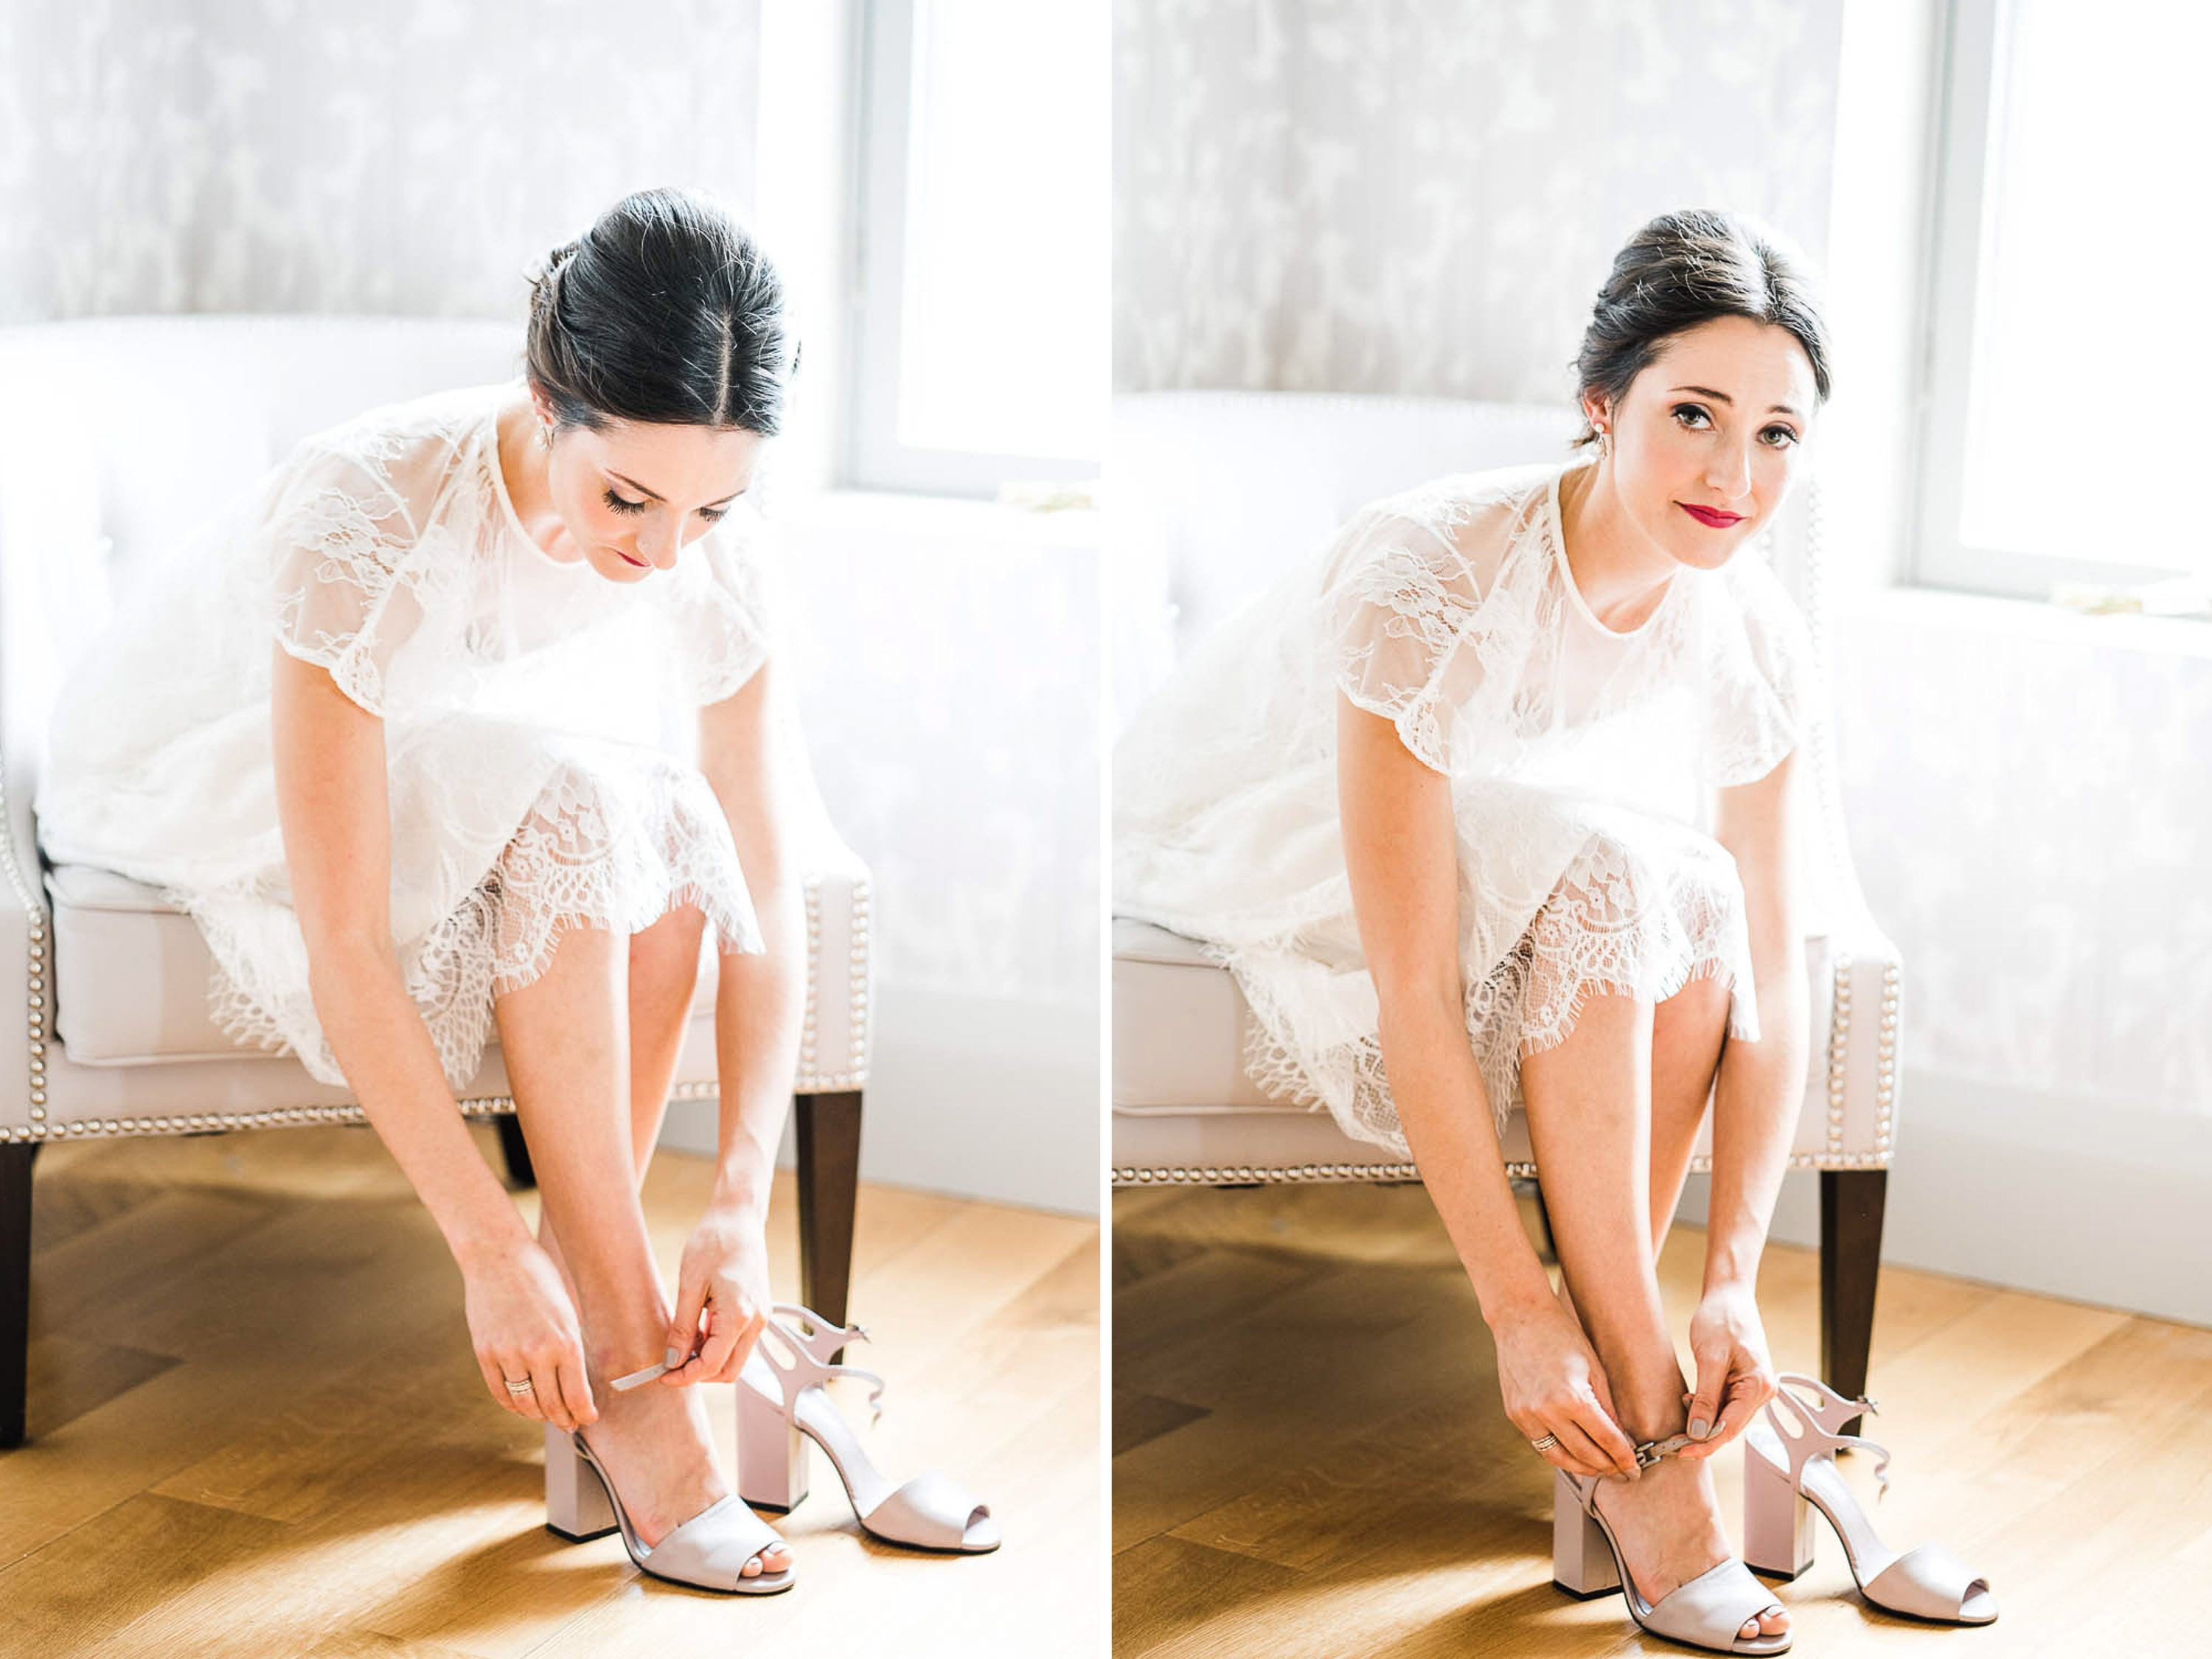 Bride in simple white dress putting shoes on. Sunlight streaming through window.